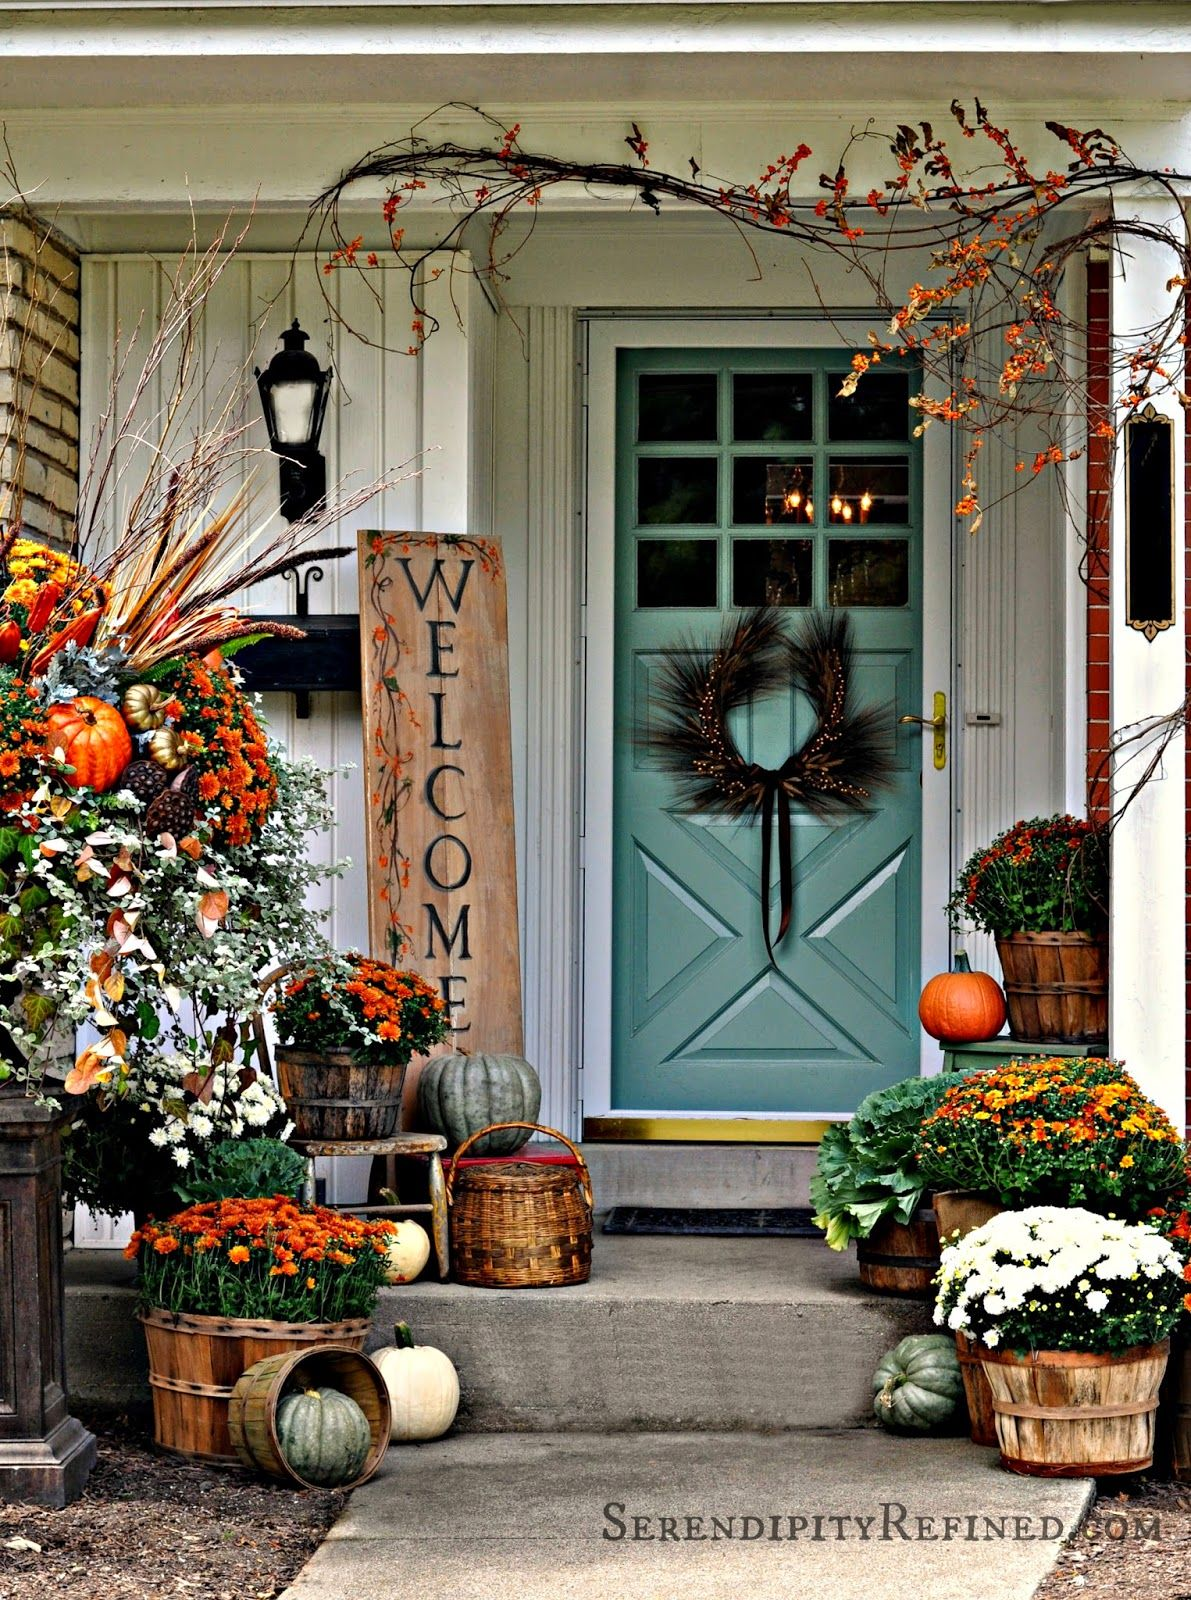 Uncategorized Fall Porch Decorating Ideas Pictures serendipity refined fall harvest porch decor with reclaimed wood sign